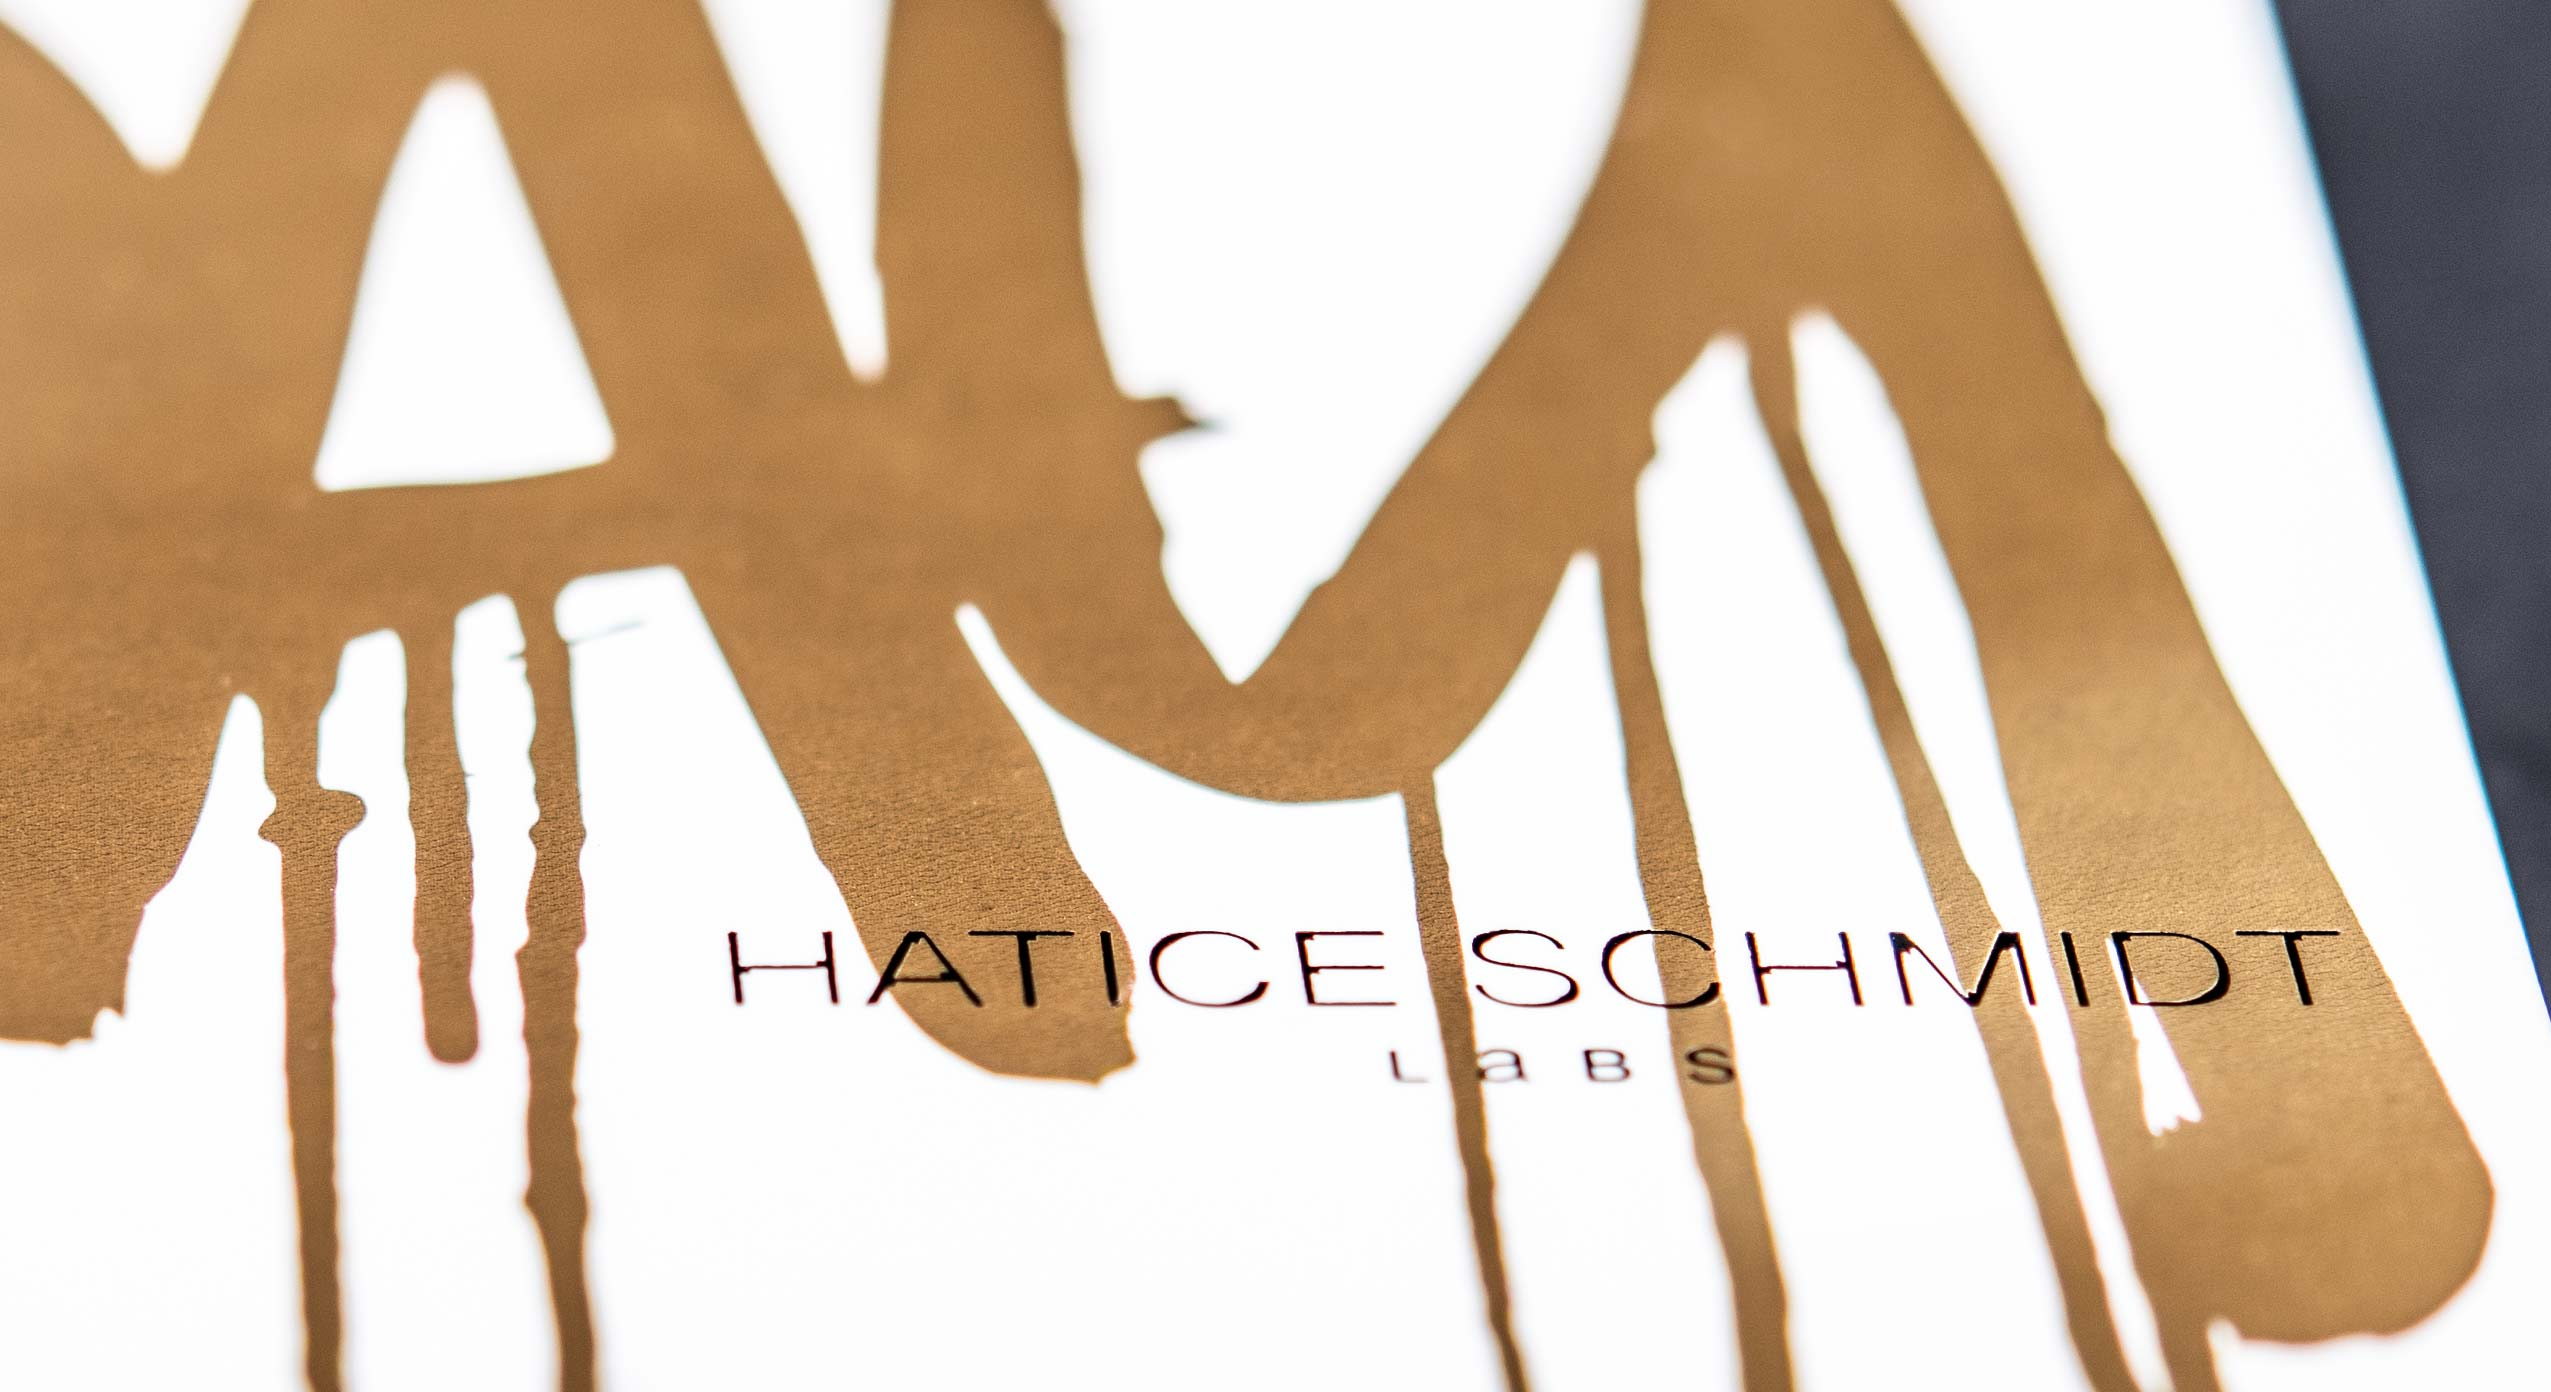 Close up from Hatice Schmidt LaBS logo on eye shadow palette